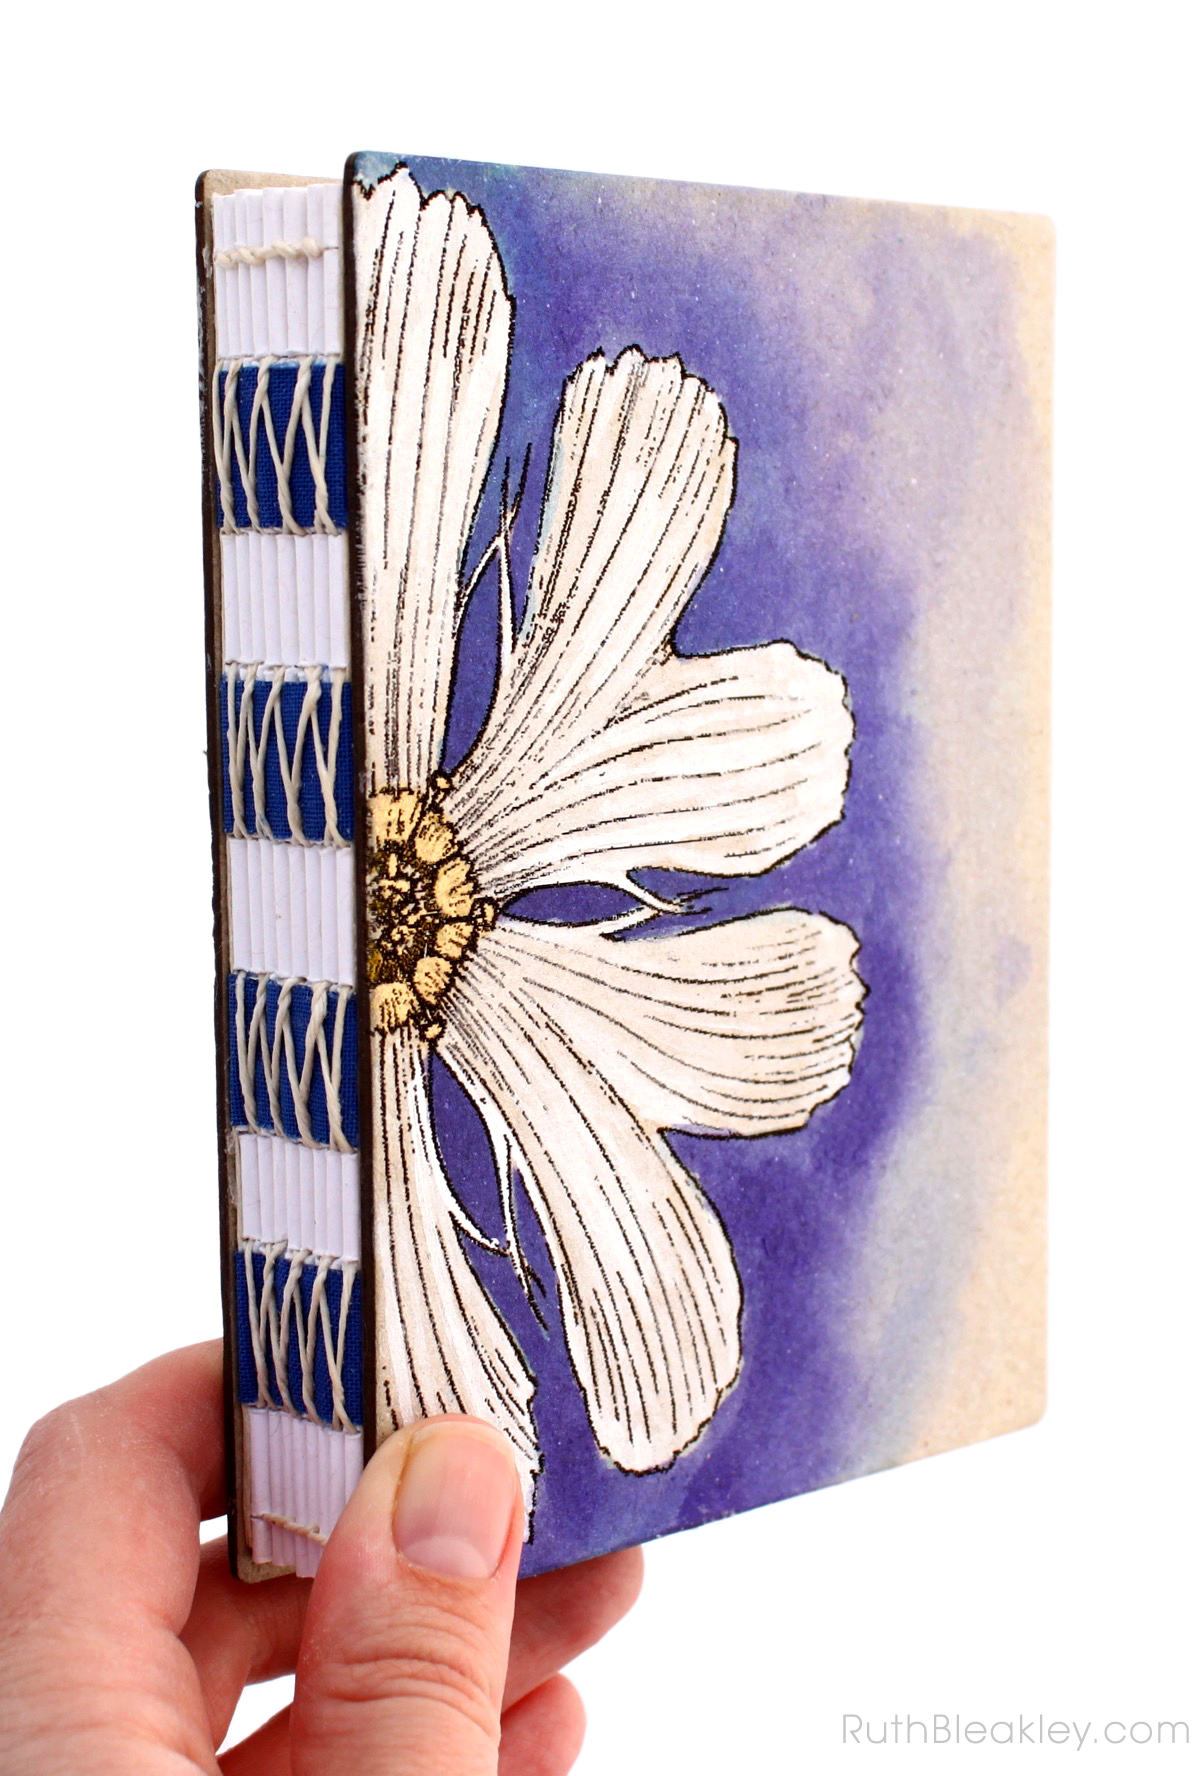 Unlined Art Journal with Purple and White Daisy handpainted by book artist Ruth Bleakley - 1